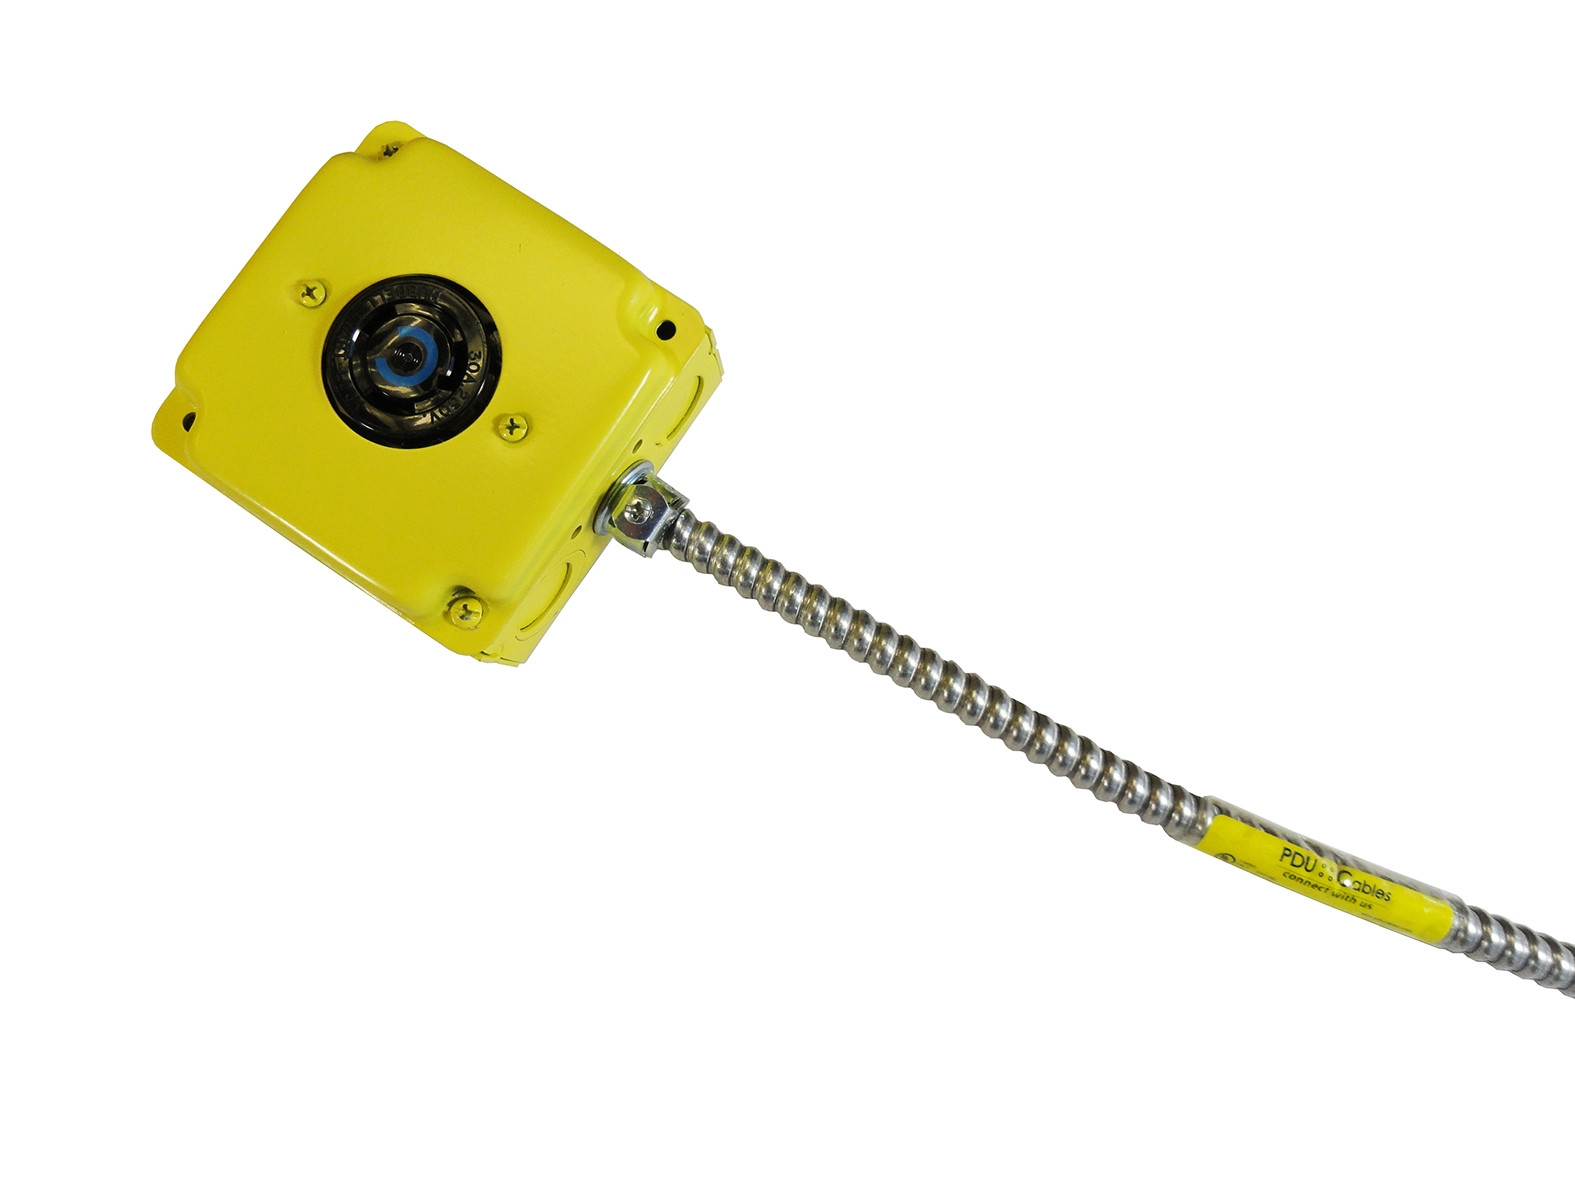 MC (Metal Clad) Cable Assembly with yellow box and conduit label